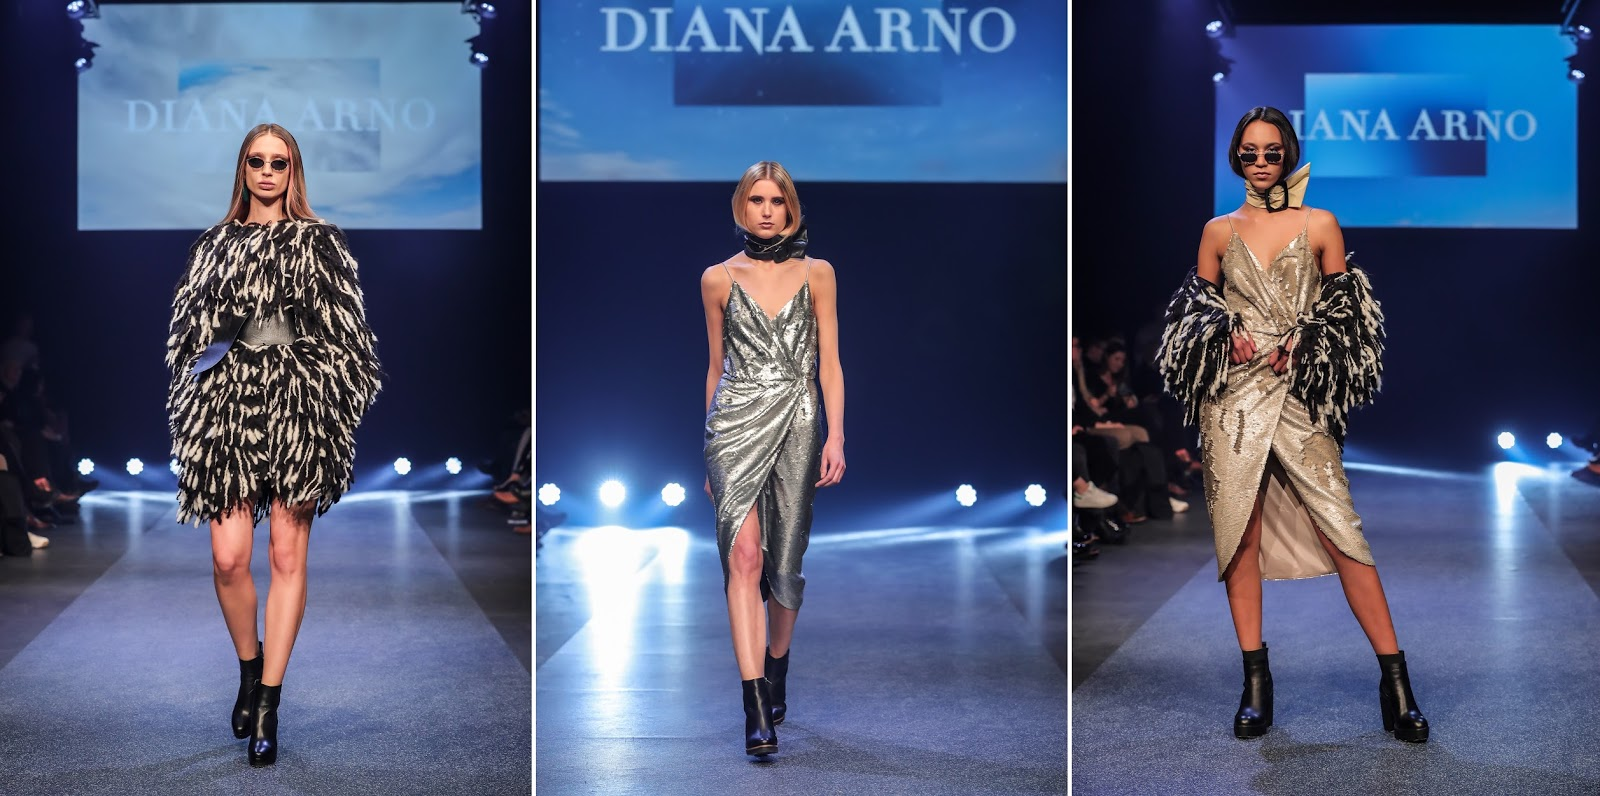 diana arno tallinn fashion week 2017